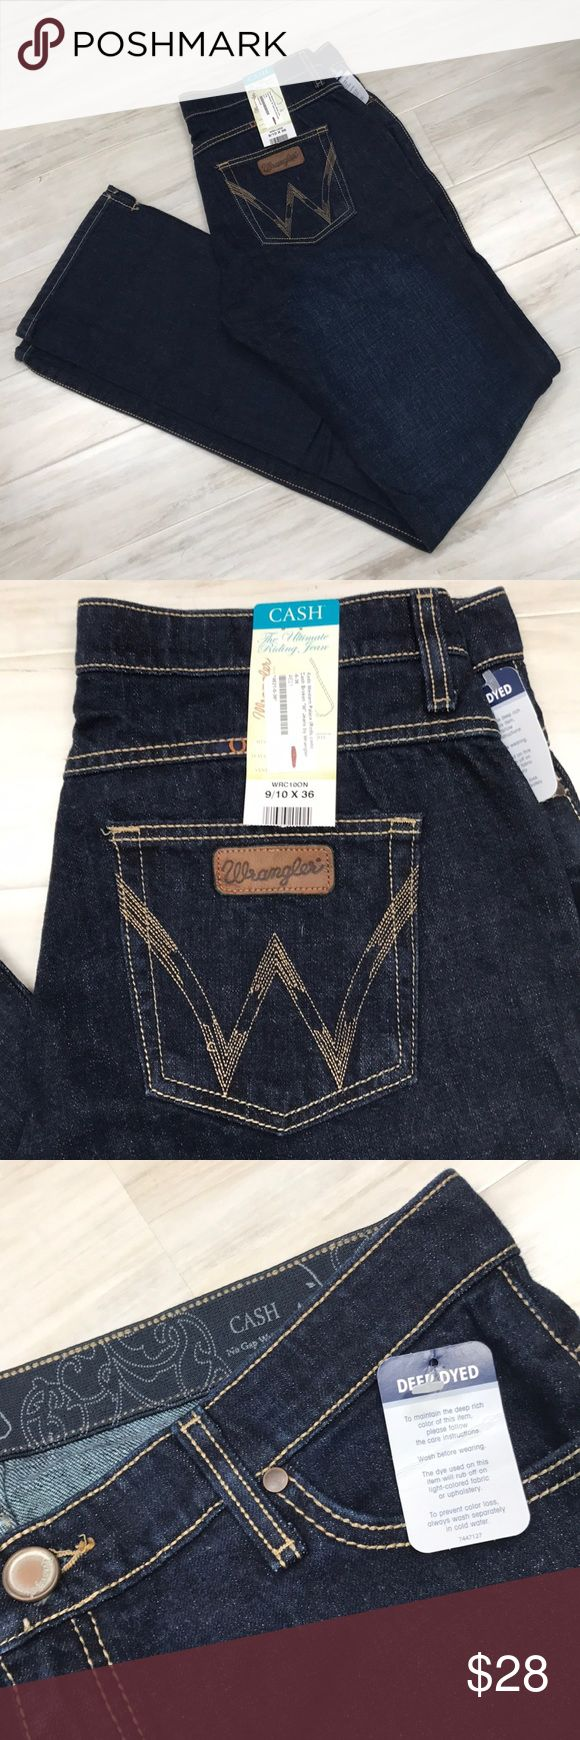 """NWT Wrangler Cash jeans Brand new Wrangler Cash Broken """"W"""" jeans. Deep dyed. Purchased from Rods online. Size 9/10 length 36"""". Wrangler Jeans Boot Cut"""